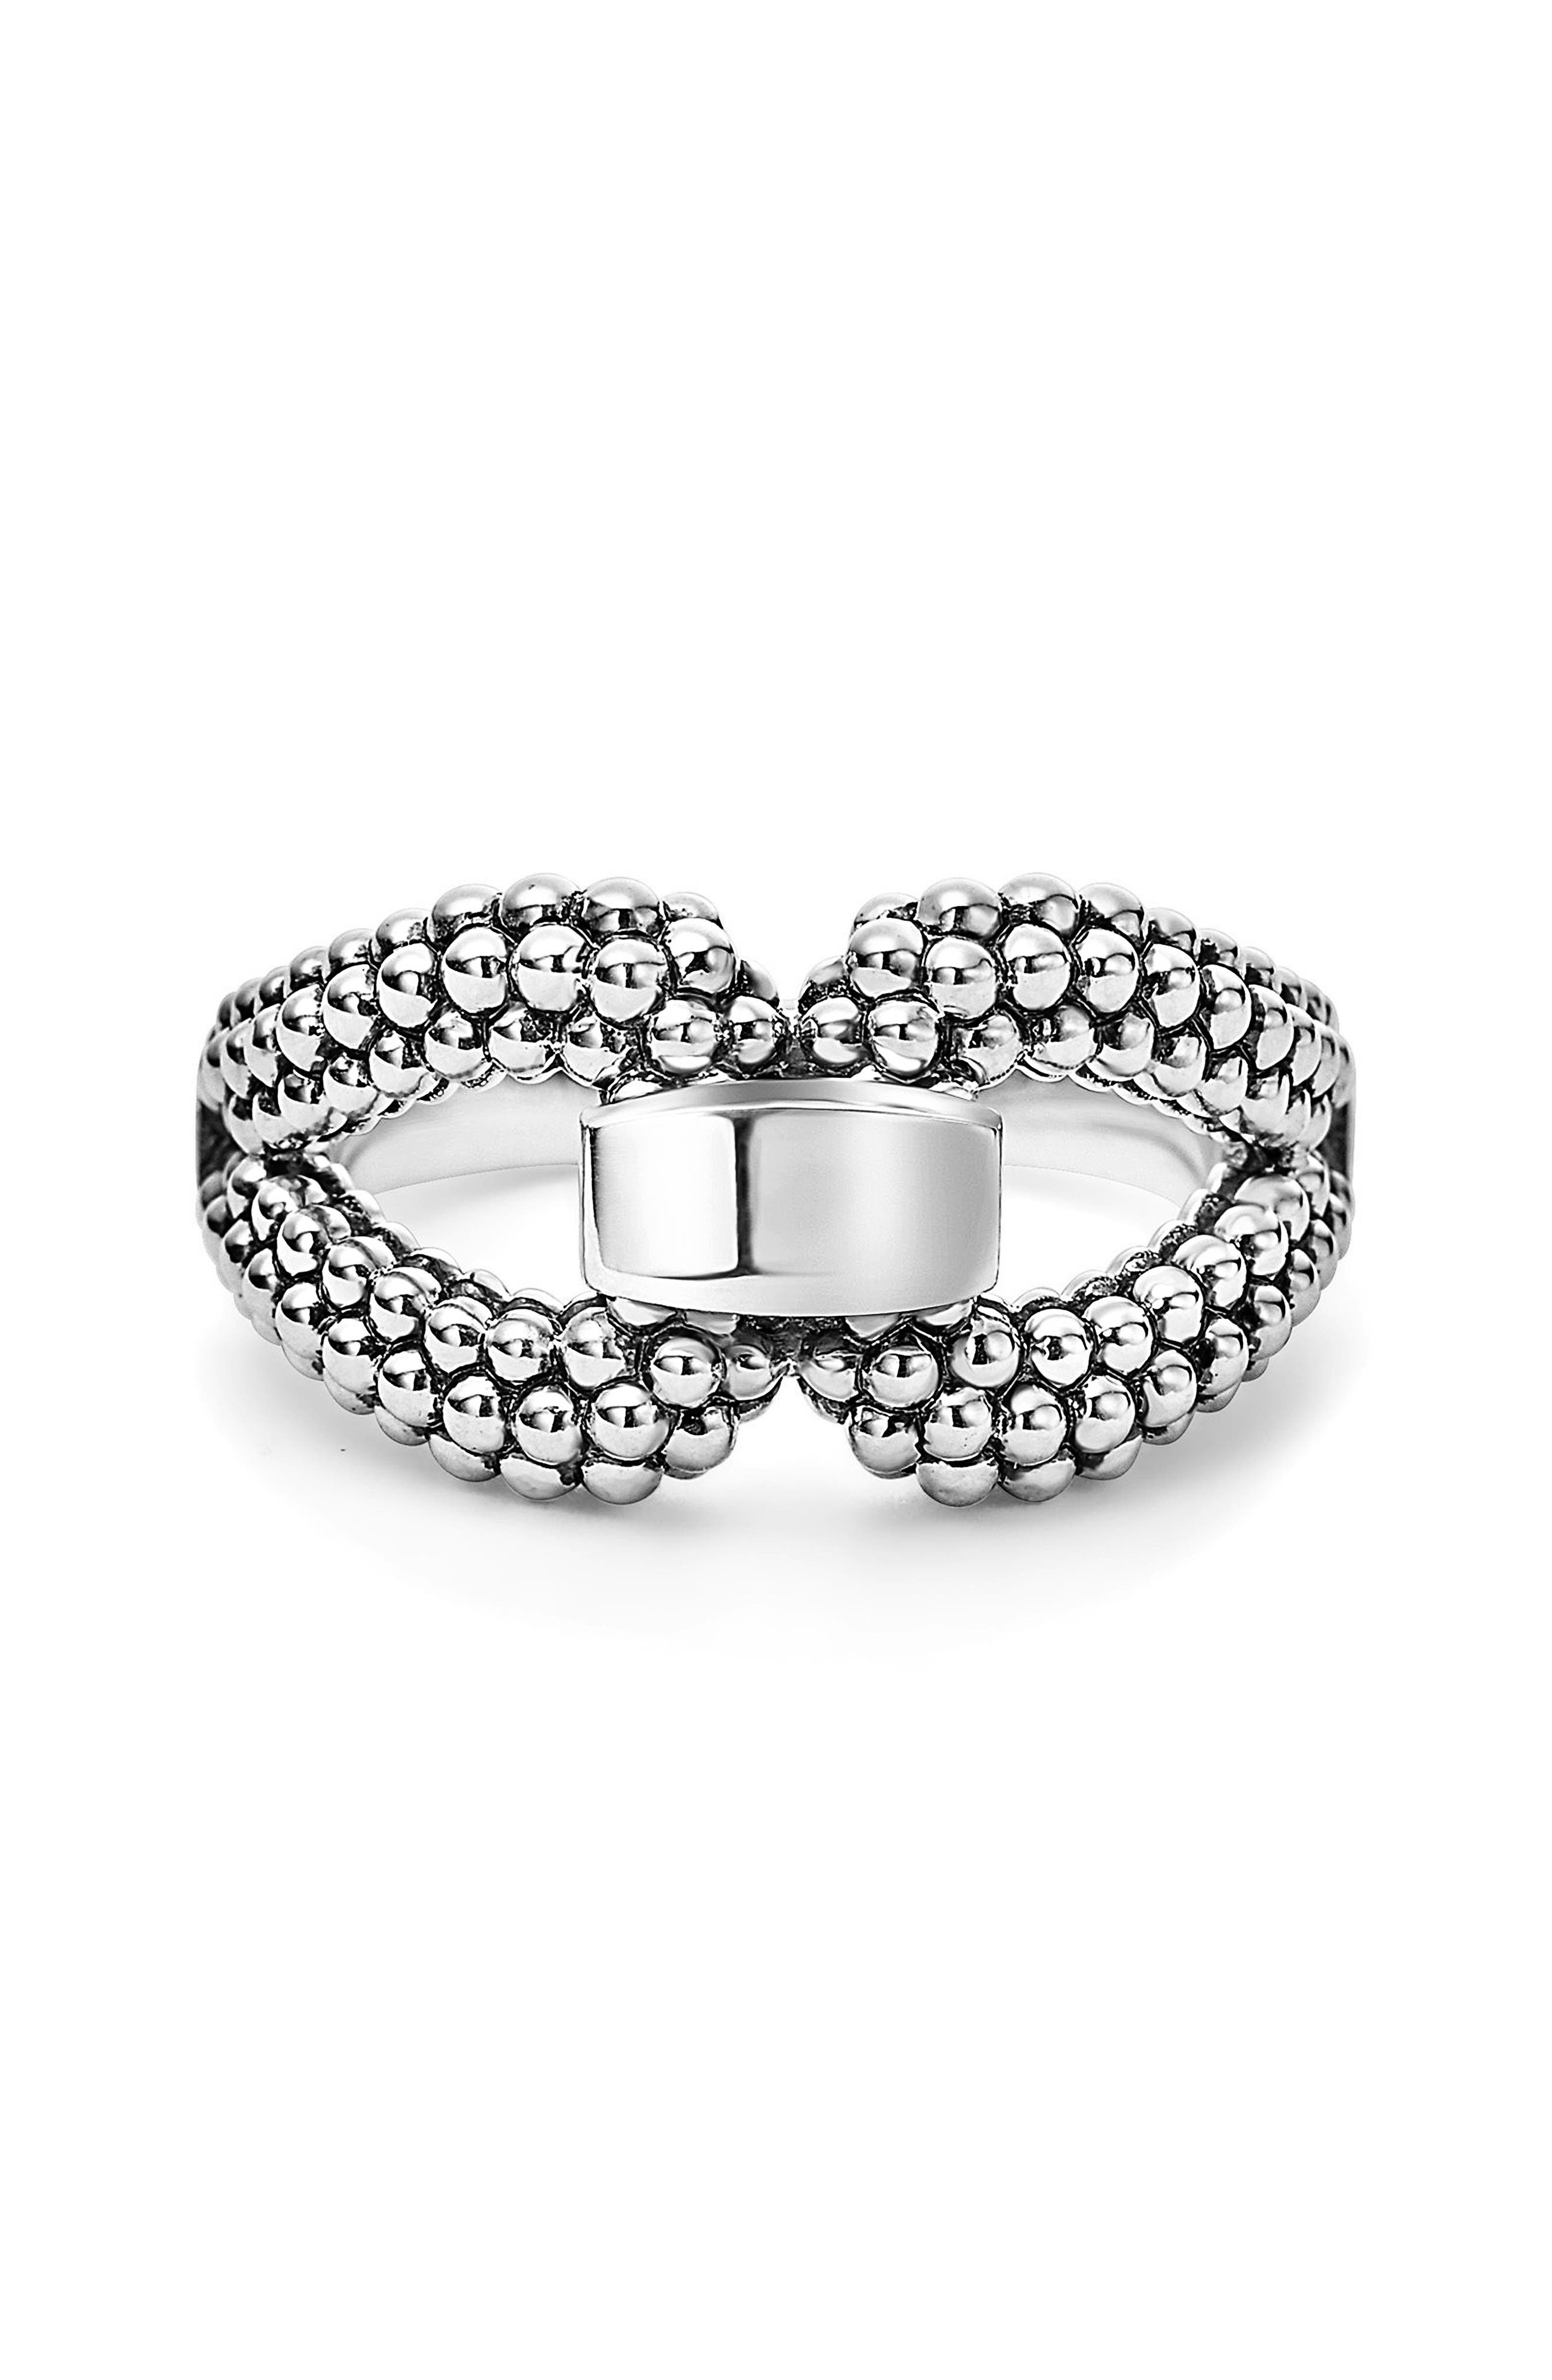 Derby Caviar Ring,                             Alternate thumbnail 2, color,                             040